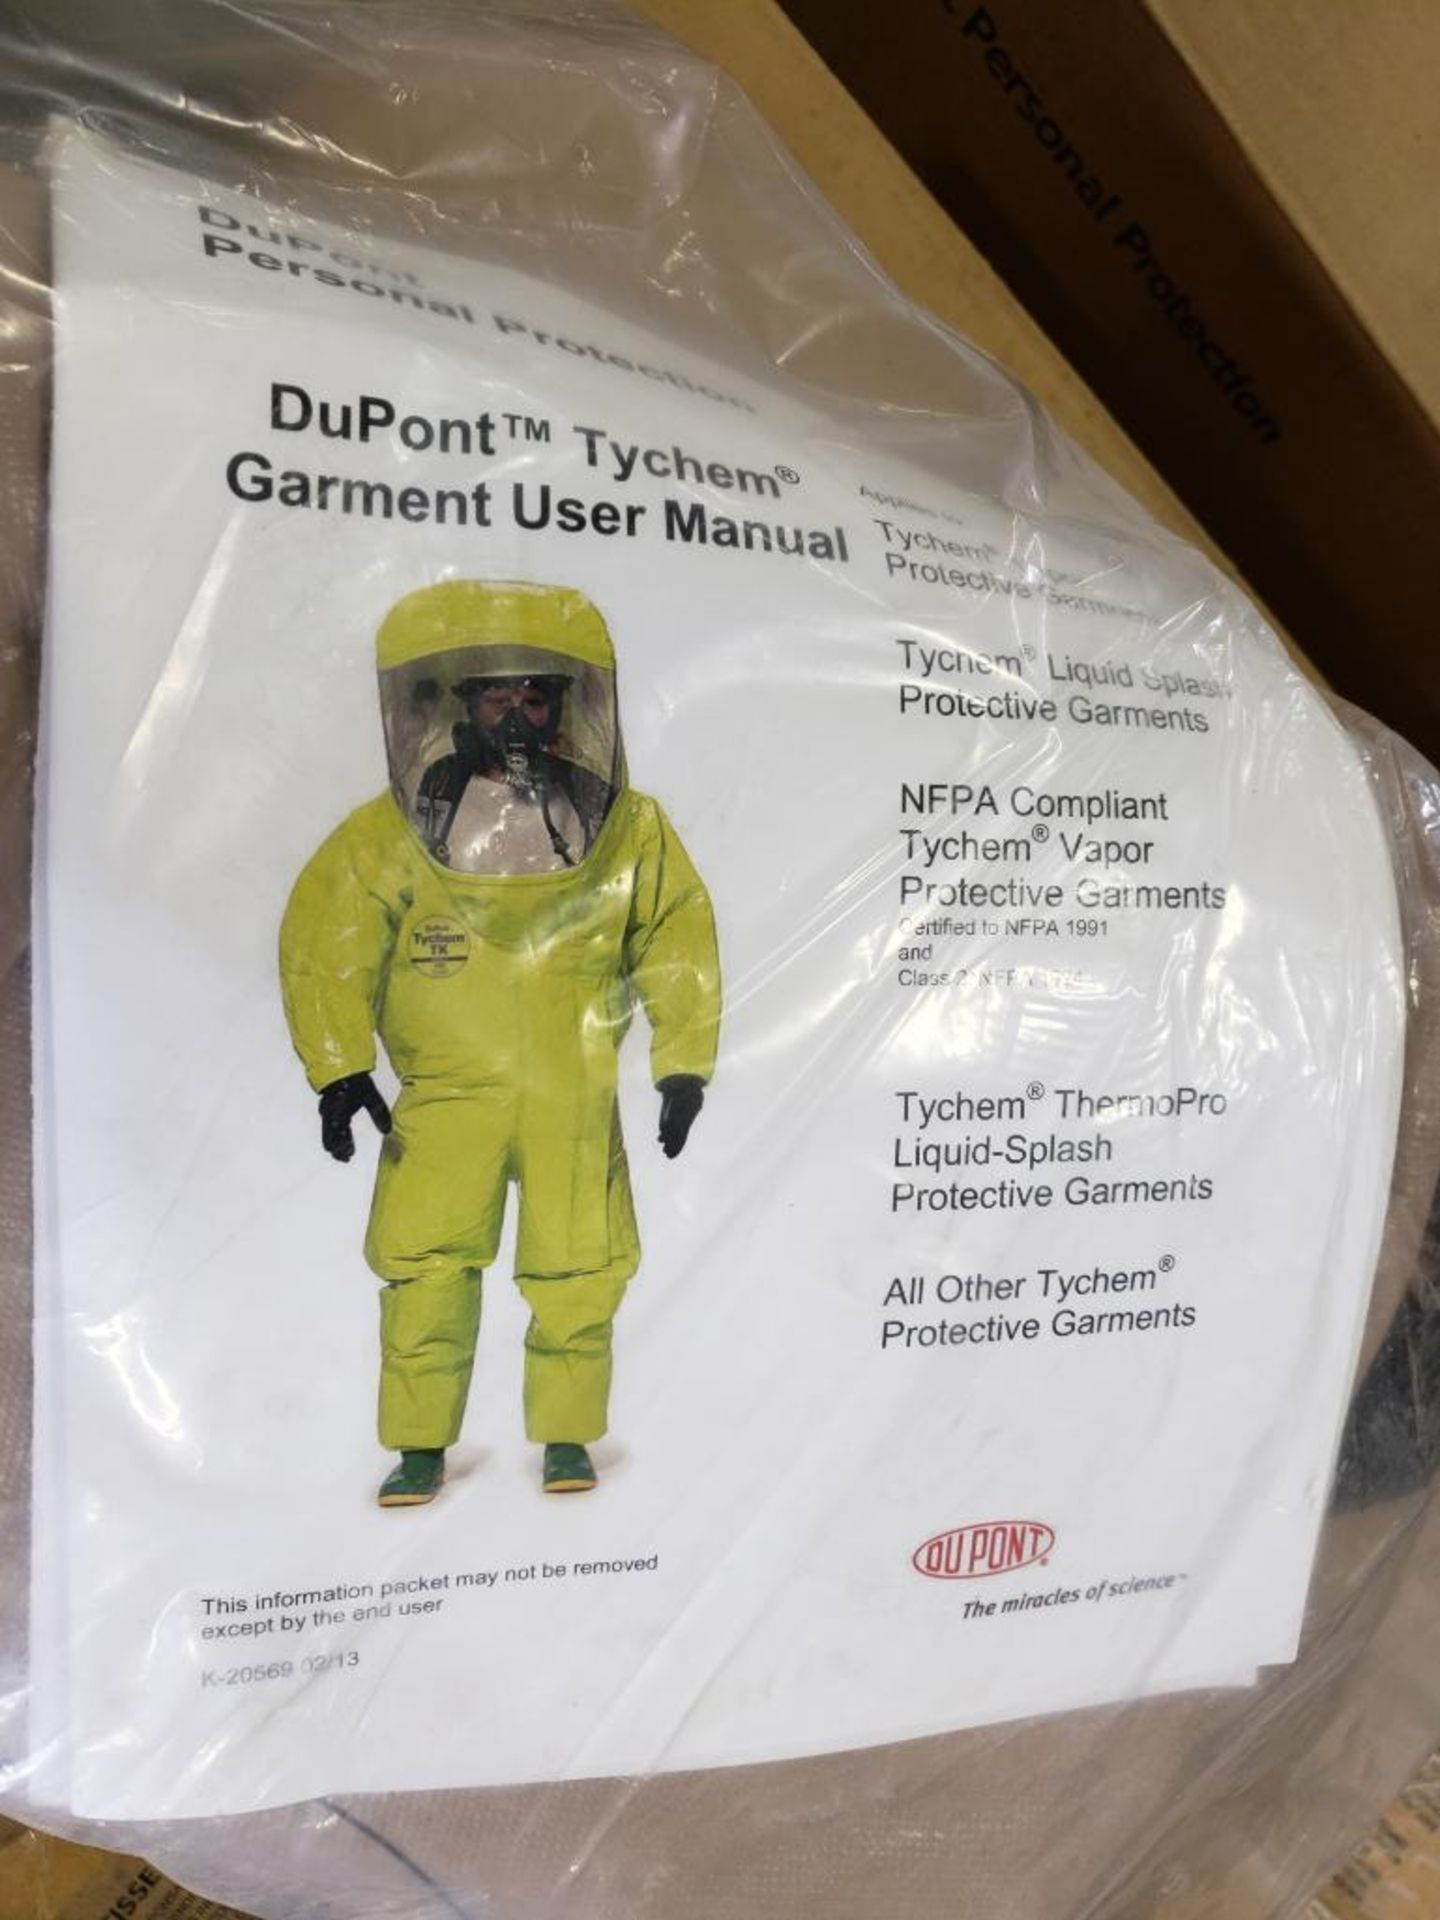 Qty 6 - Tychem coverall garment. Size Large. Part number C3198TTNMD0006WG. New in package. - Image 3 of 4